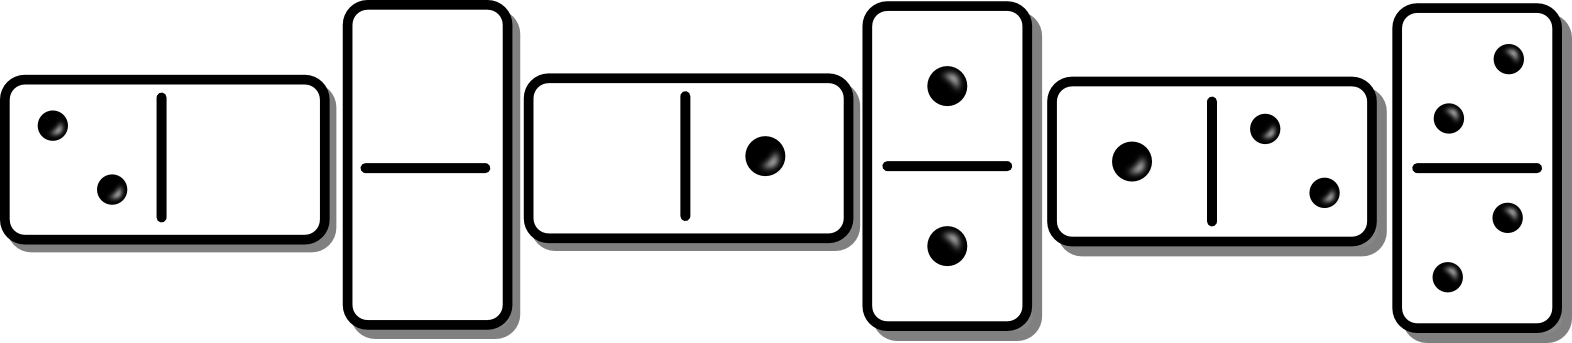 Domino clipart animated.